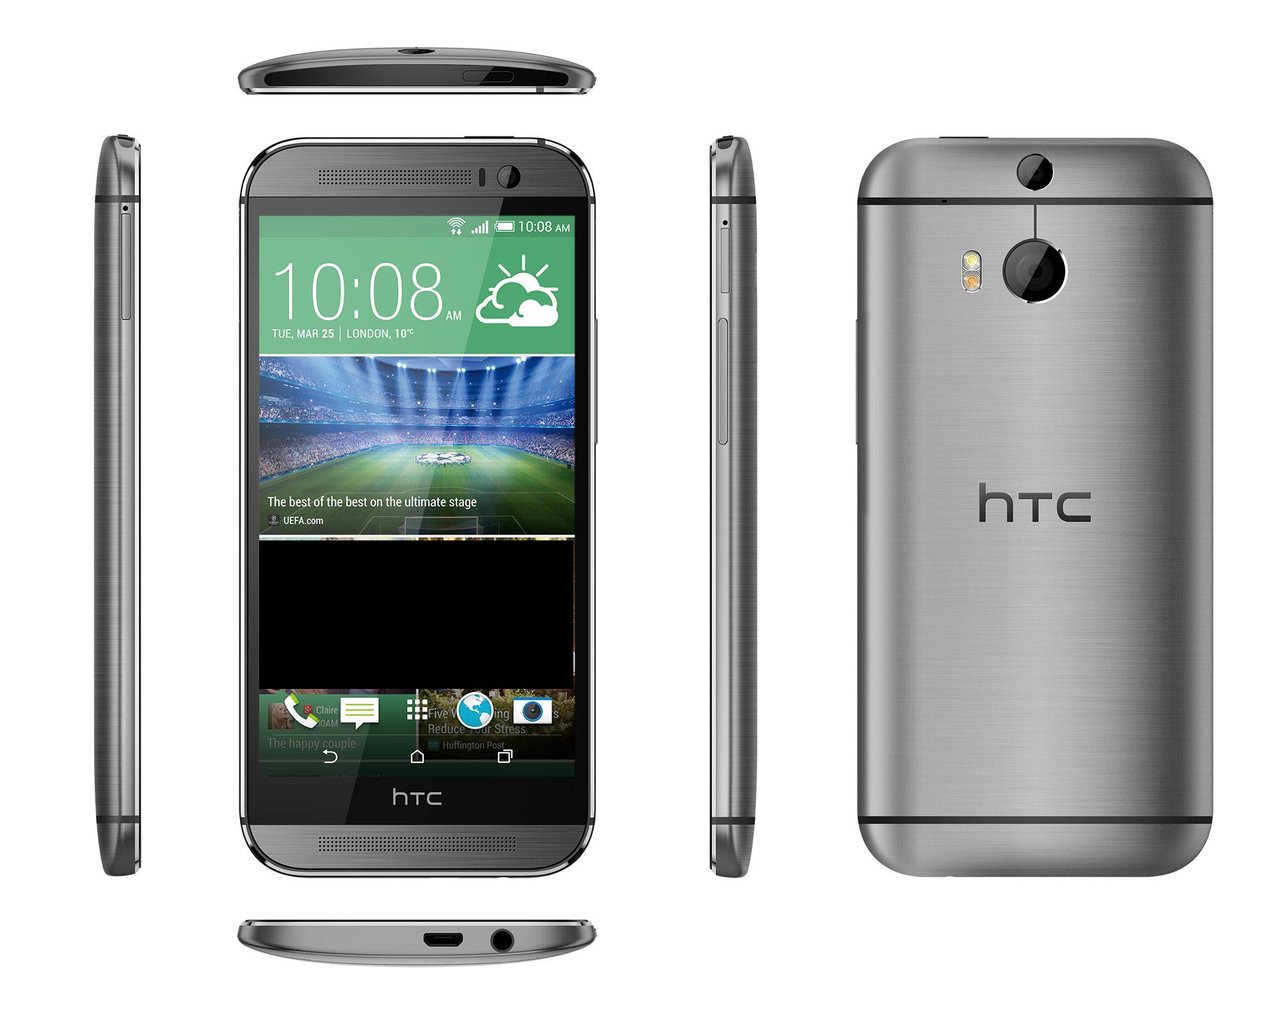 HTC One M9 Features a New Liquid Silicone and Aluminum Surround, 18 MP Front, and 5 MP Rear Camera